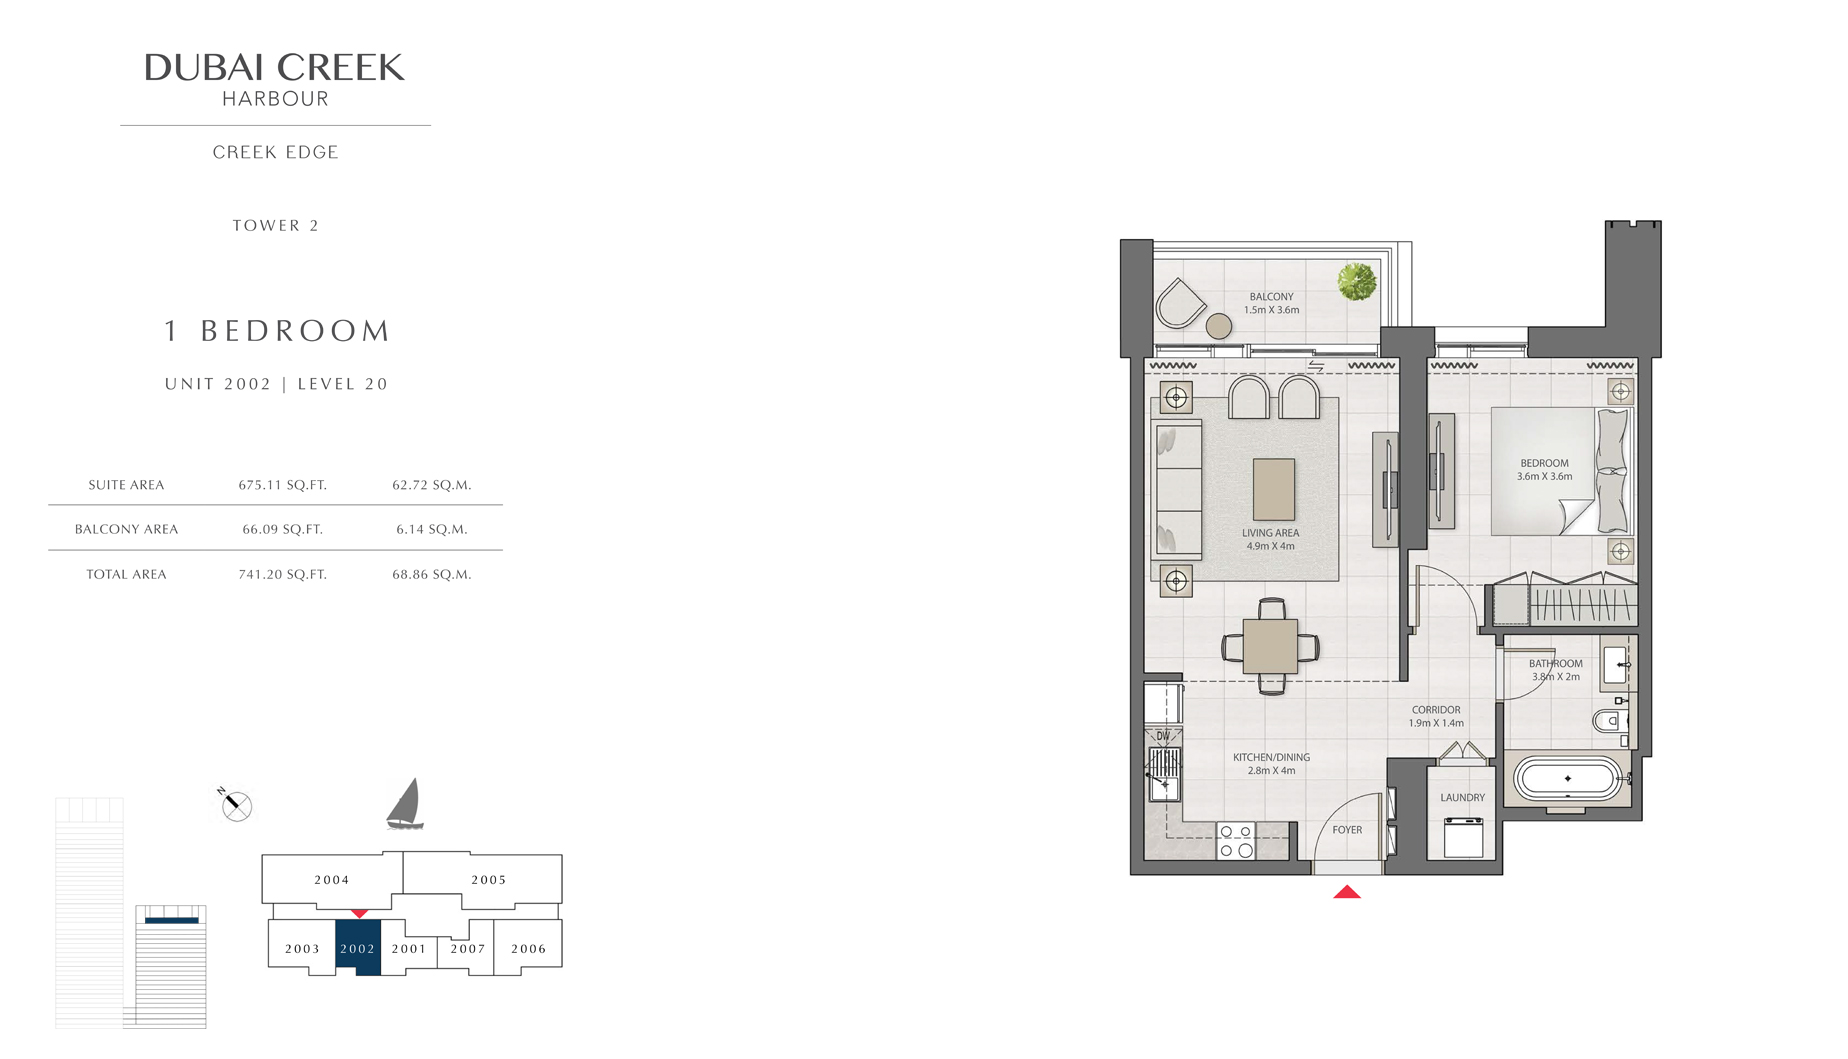 1 Bedroom Tower 2 Unit 2002 Level 20 Size 741 sq.ft